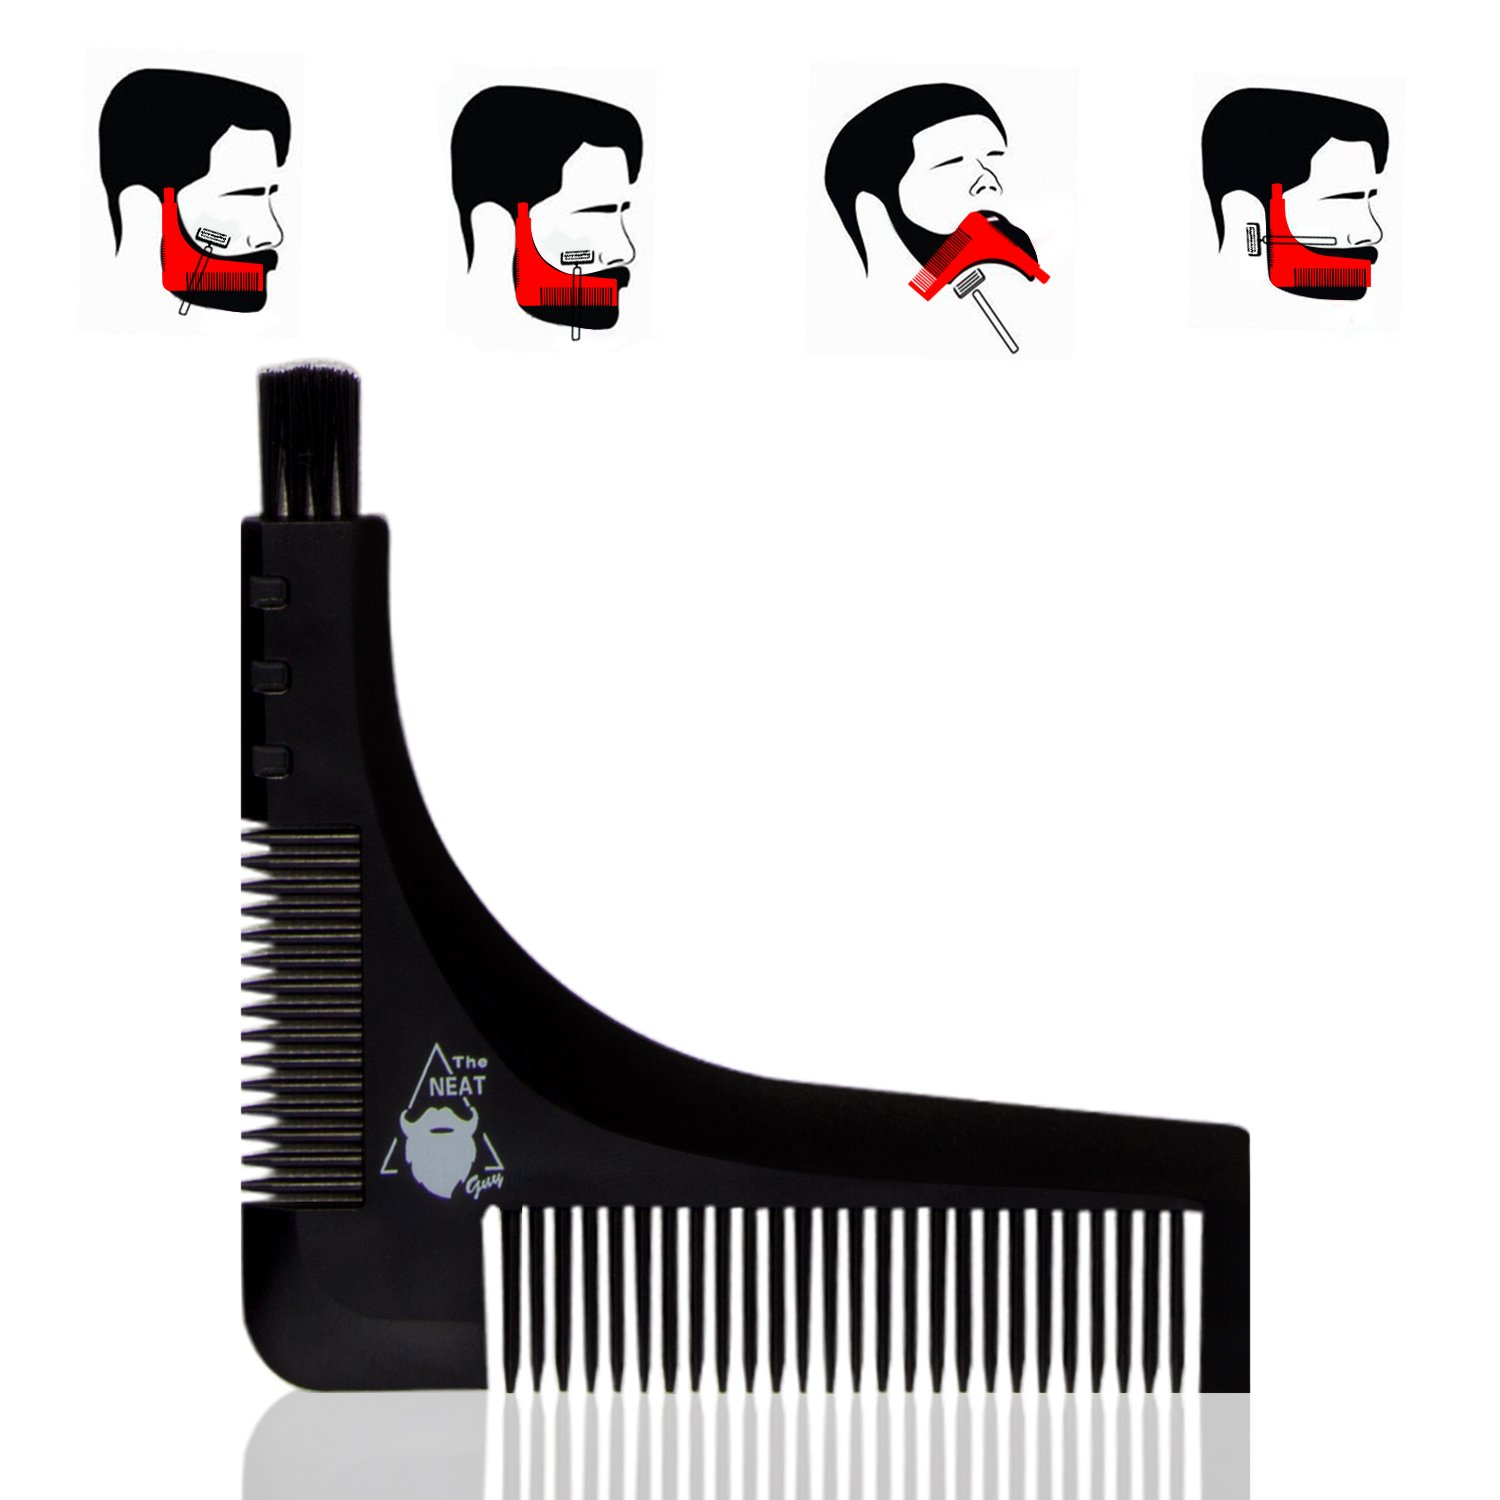 The Neat Guy 6-PACK Beard Kit with Beard Apron/Bib for Mess-Free Shaving + Shaping Tool + Comb + Scissor + Bag, All you Need for a Good, Clean Shave, The Perfect Gift by The Neat Guy (Image #8)